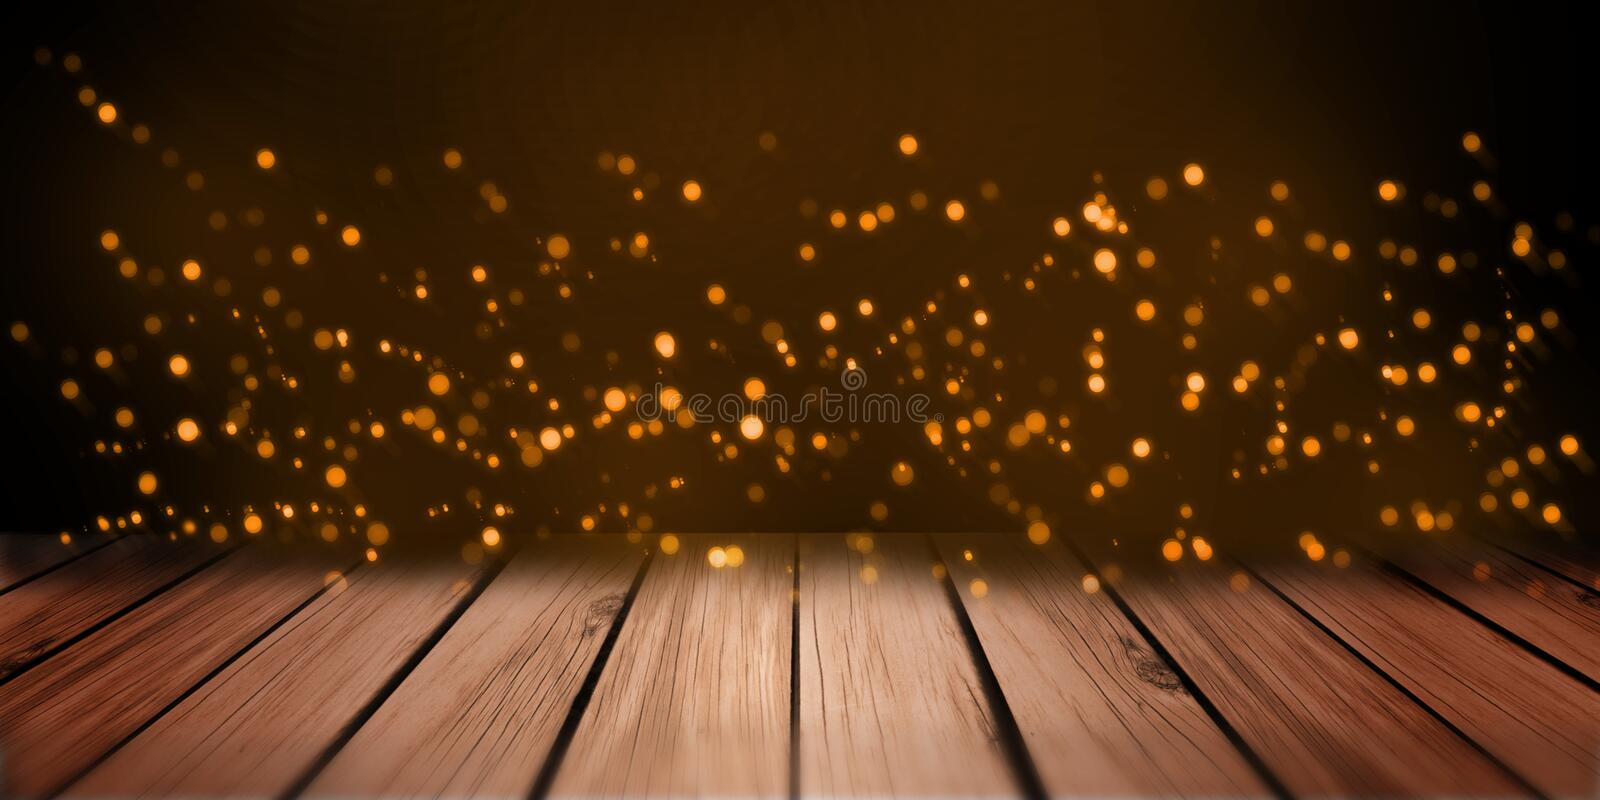 Abstract lights orange bokeh on wood plate shelf table perspective. For product showcase, classic retro art advertising royalty free stock photos